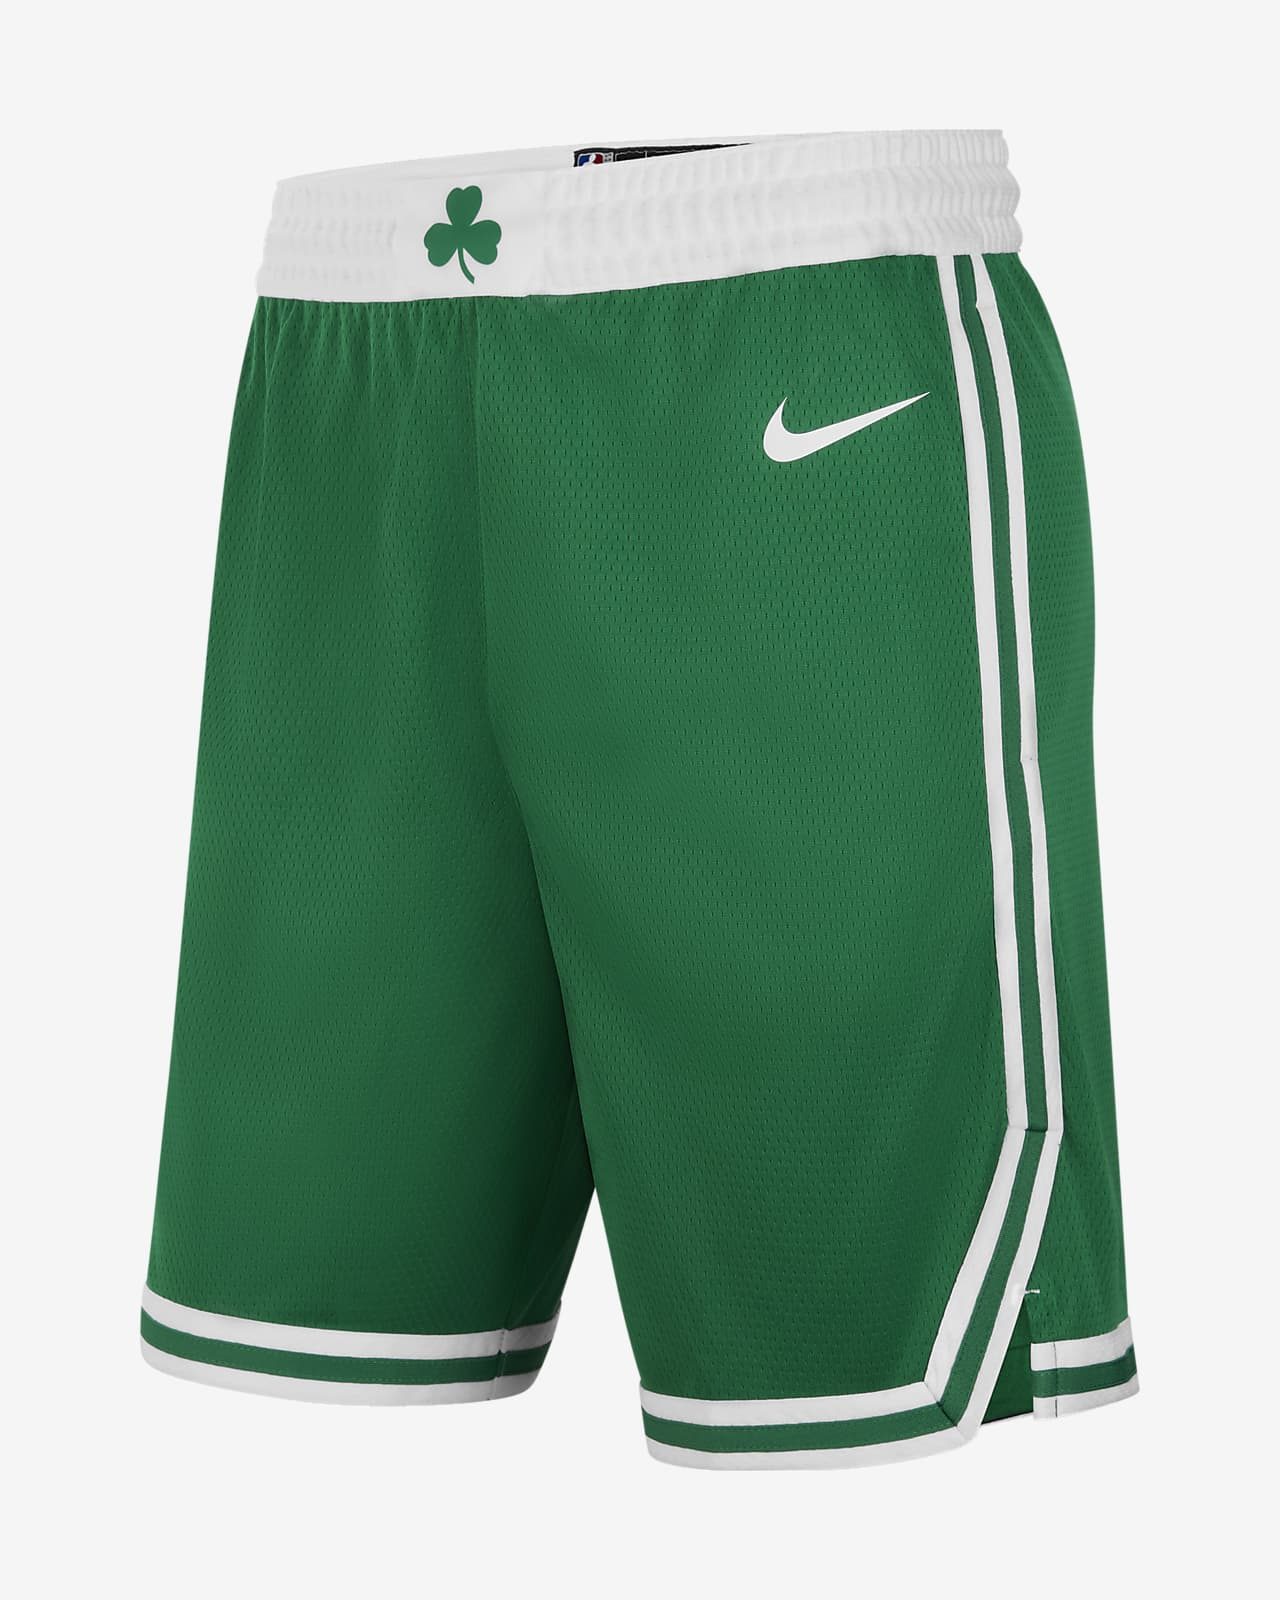 Boston Celtics Icon Edition Men's Nike NBA Swingman Shorts